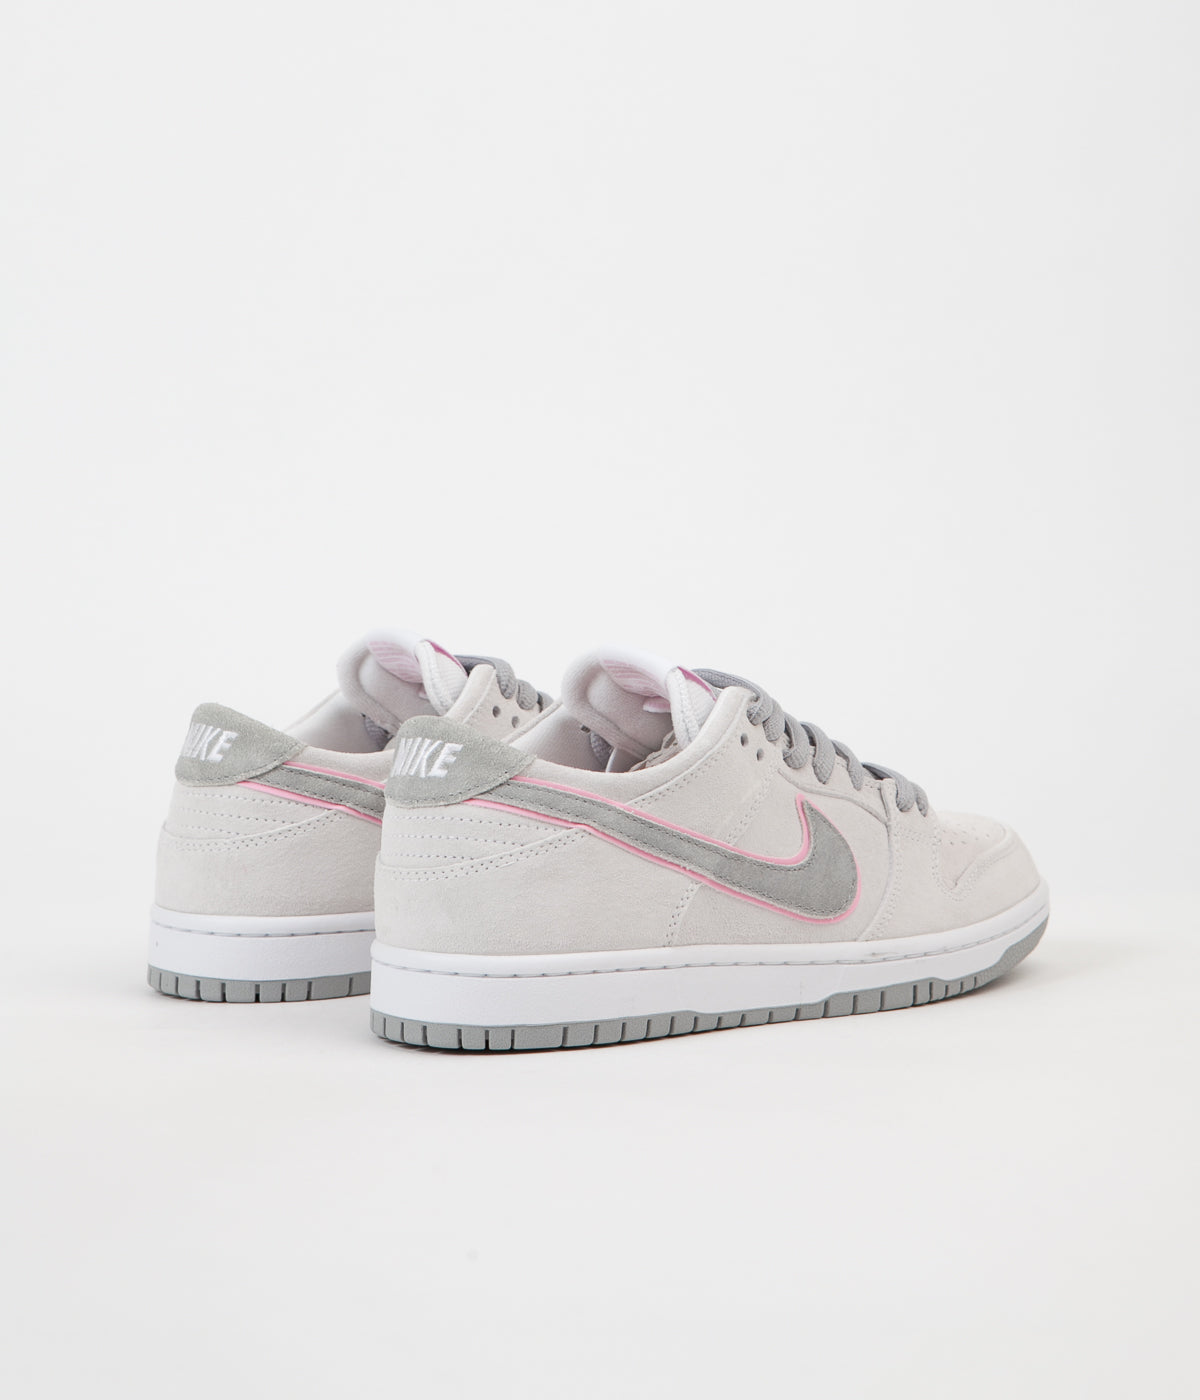 online store f5439 a4a94 Nike SB Dunk Low Pro Ishod Wair Shoes - White Perfect Pink ...